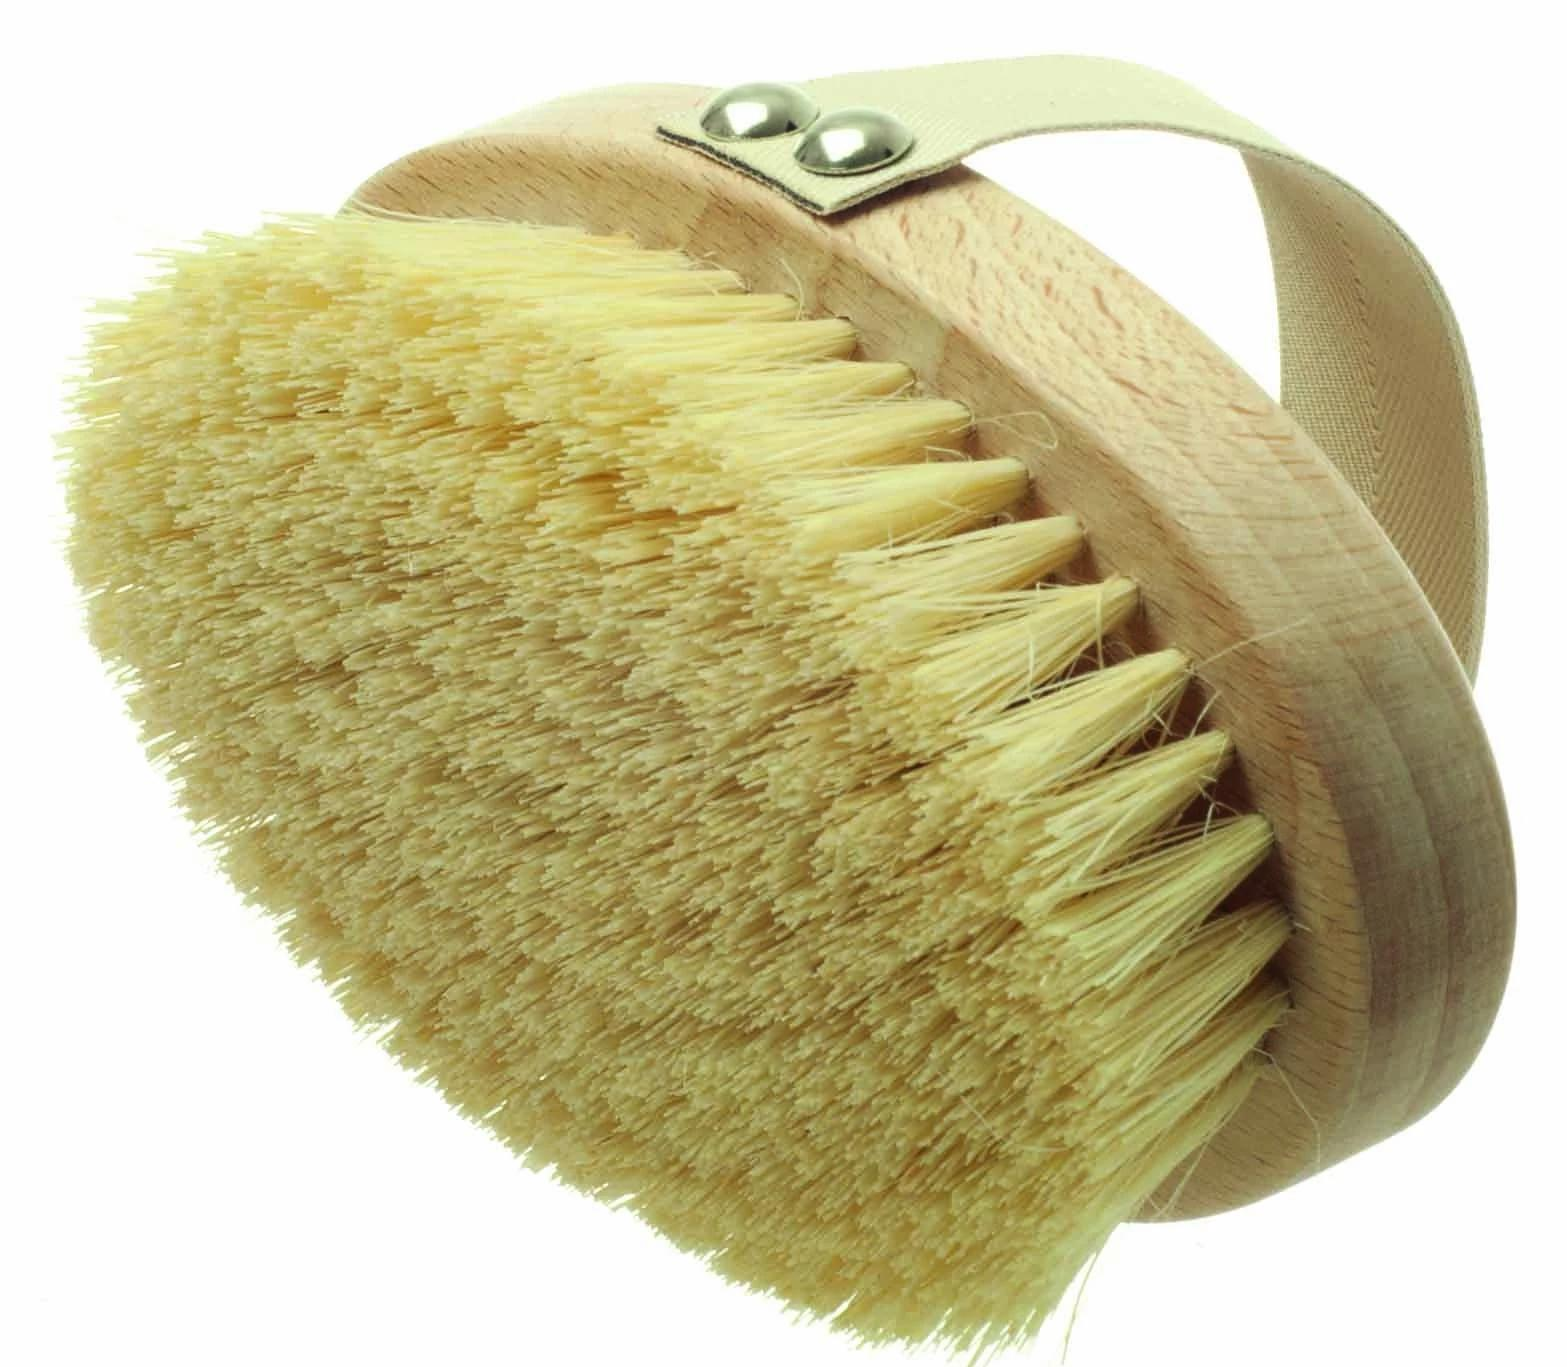 Curved Dry Skin Brush with Handle - Natural Bristle - anatome